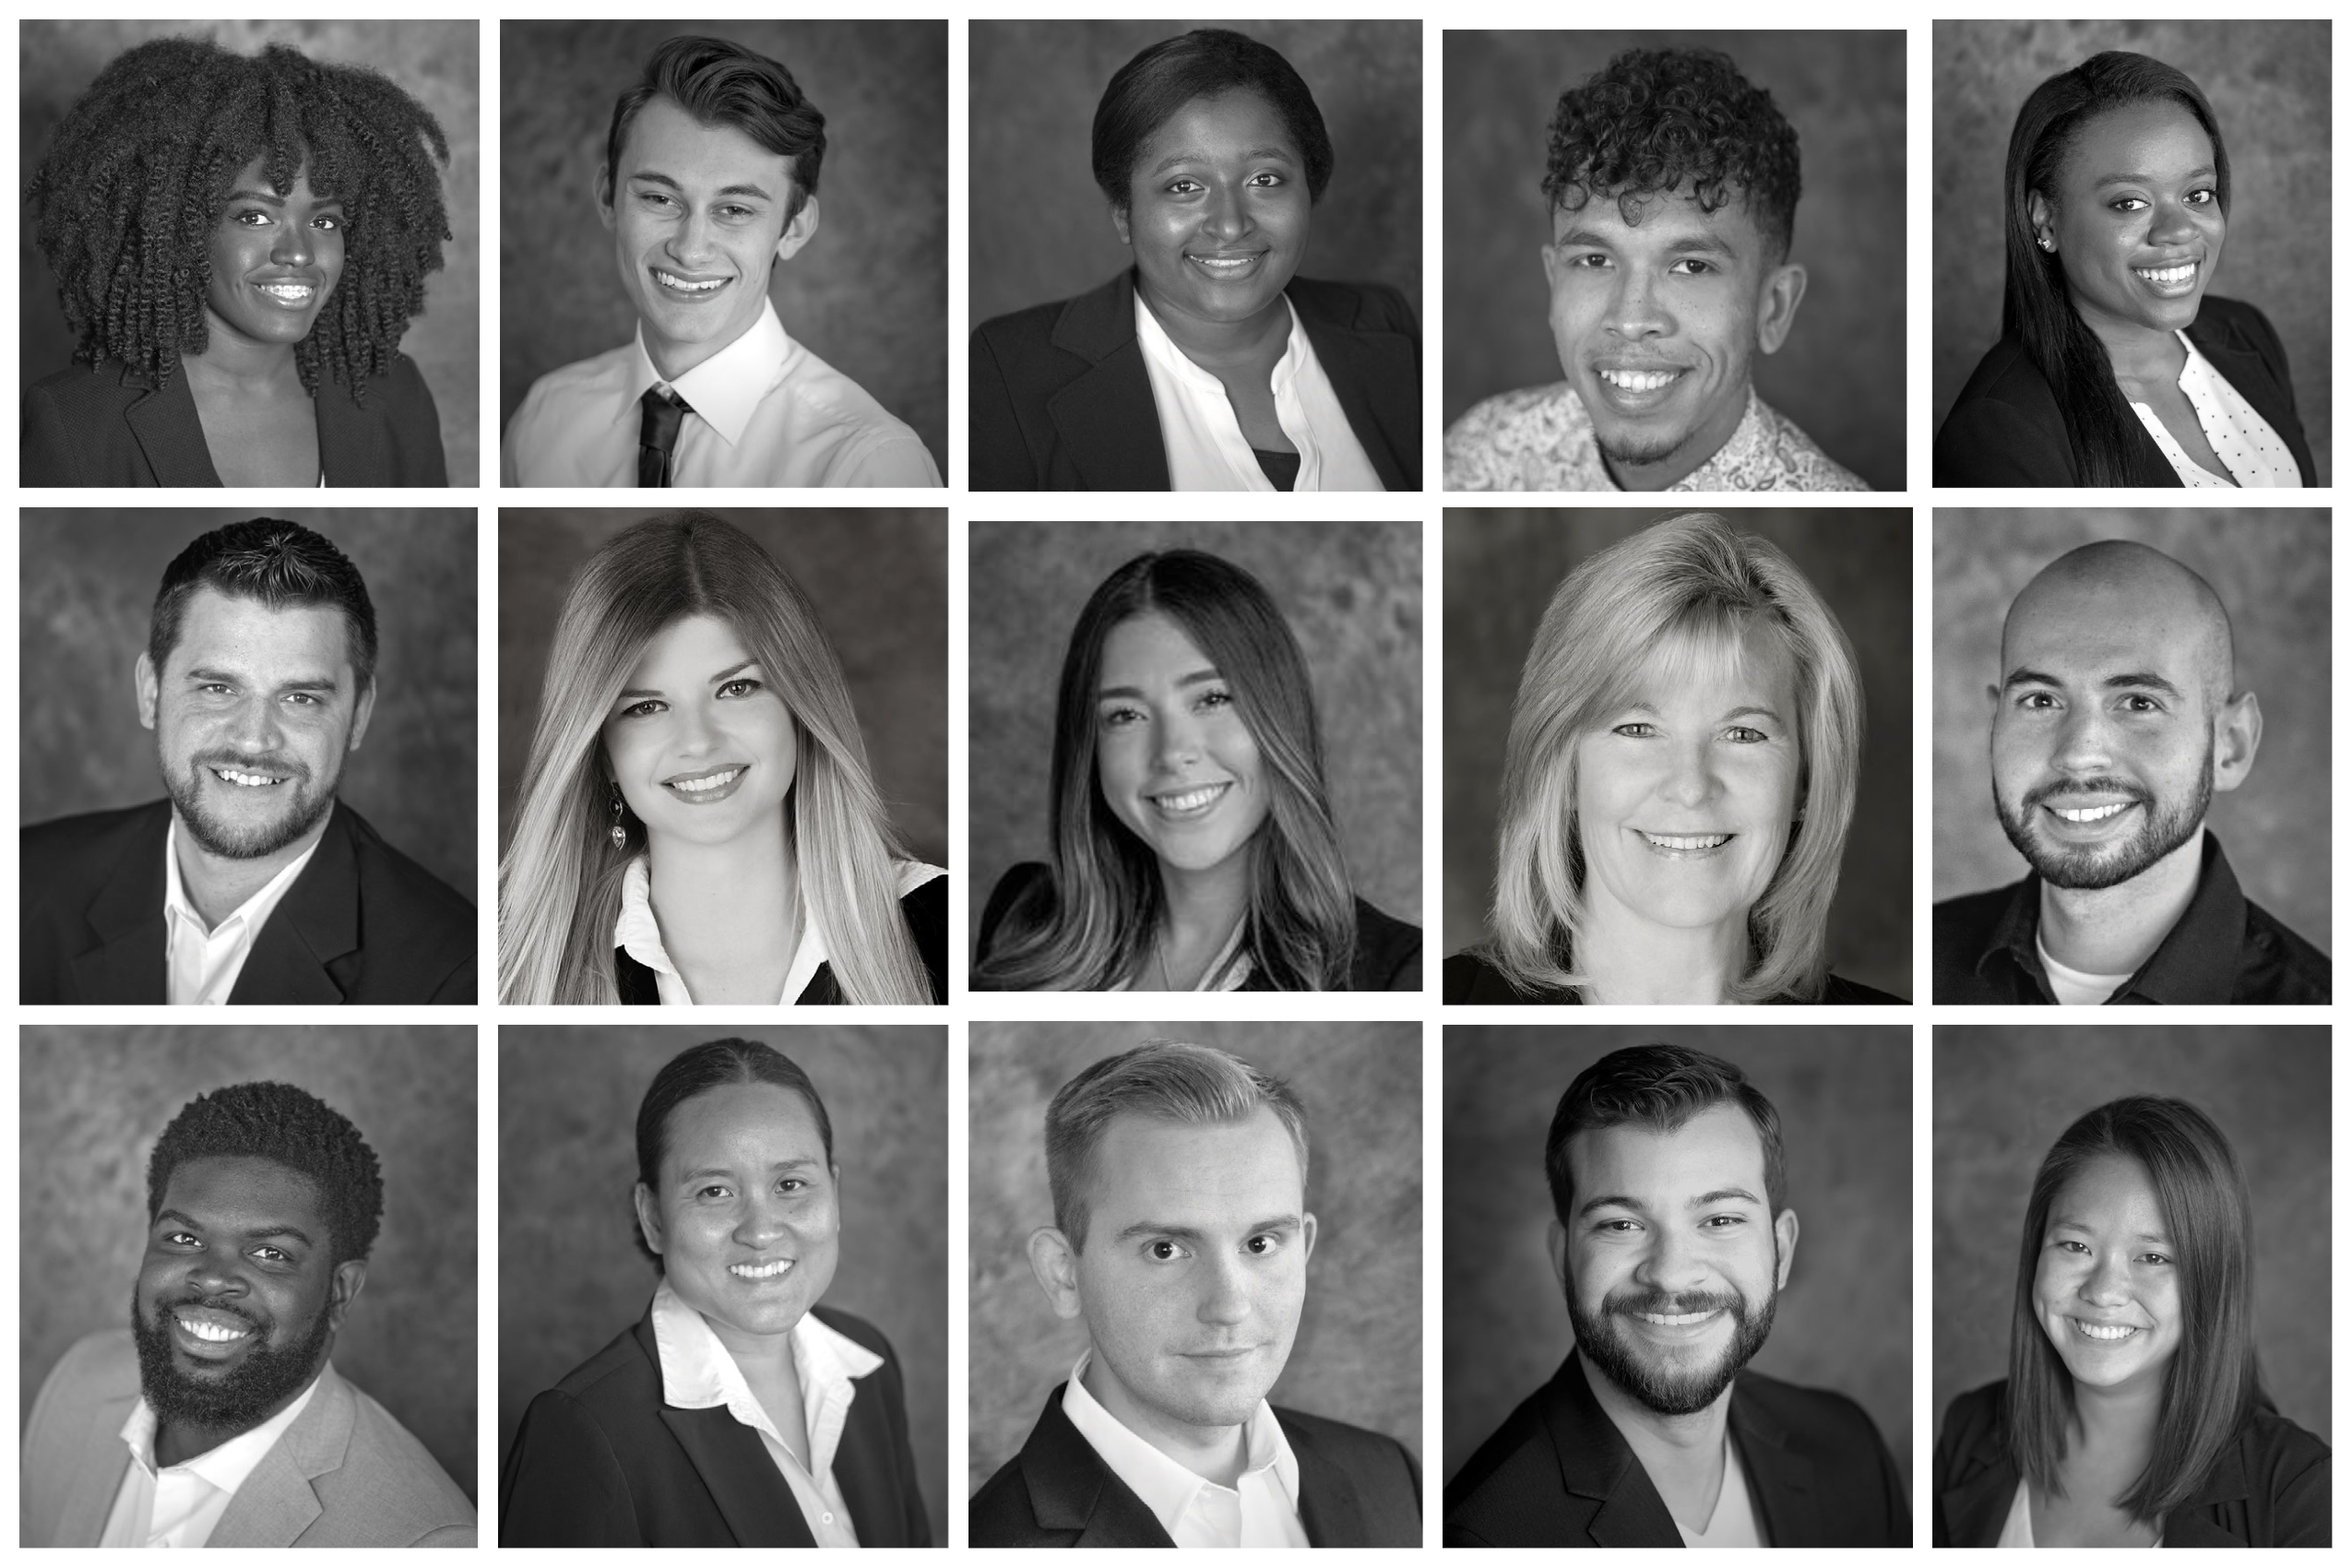 Employee Photo Collage 1 Updated011921-1